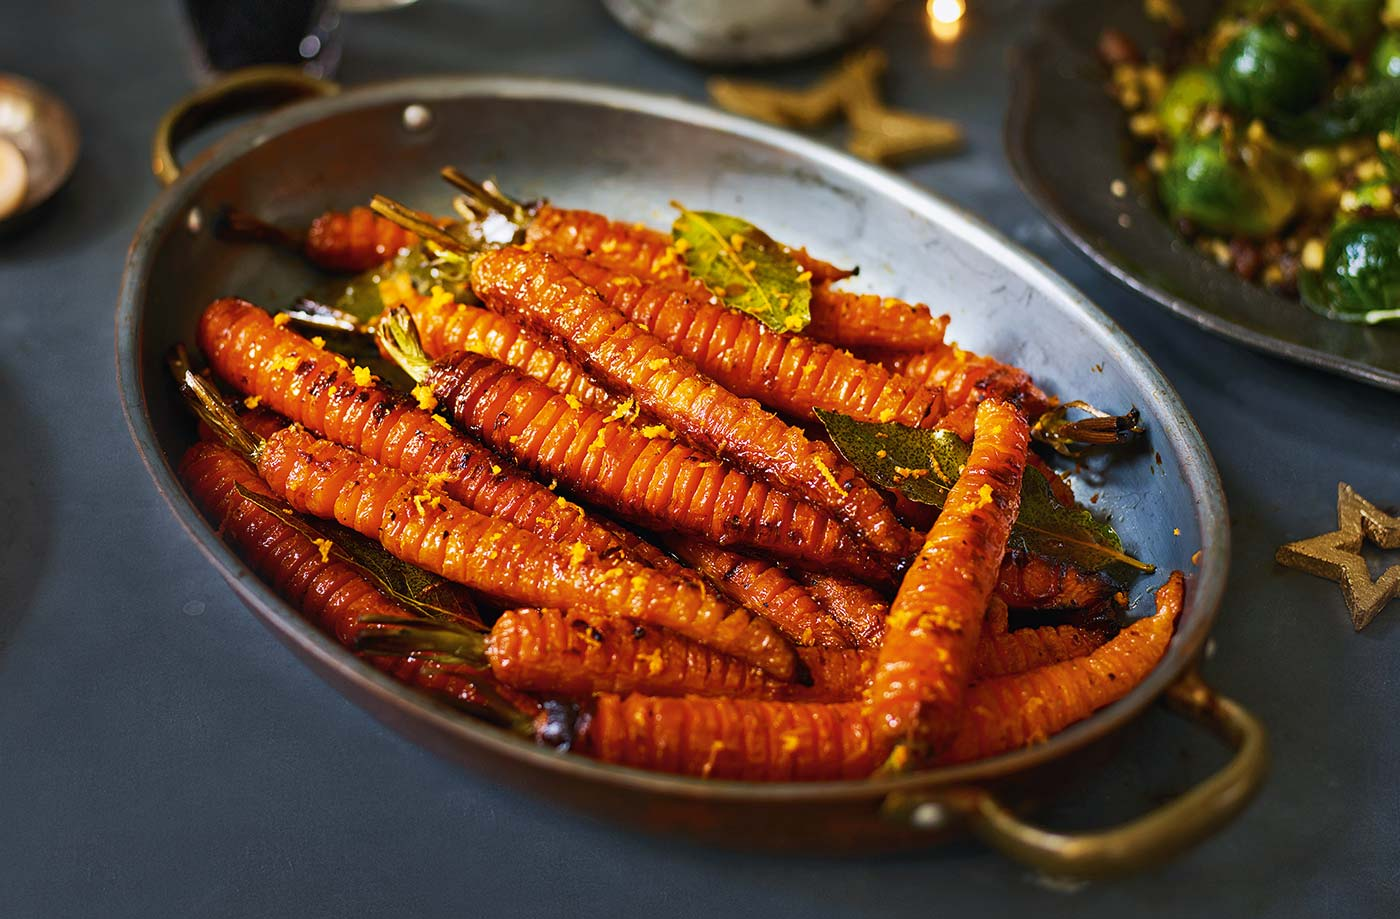 Hasselback carrots recipe